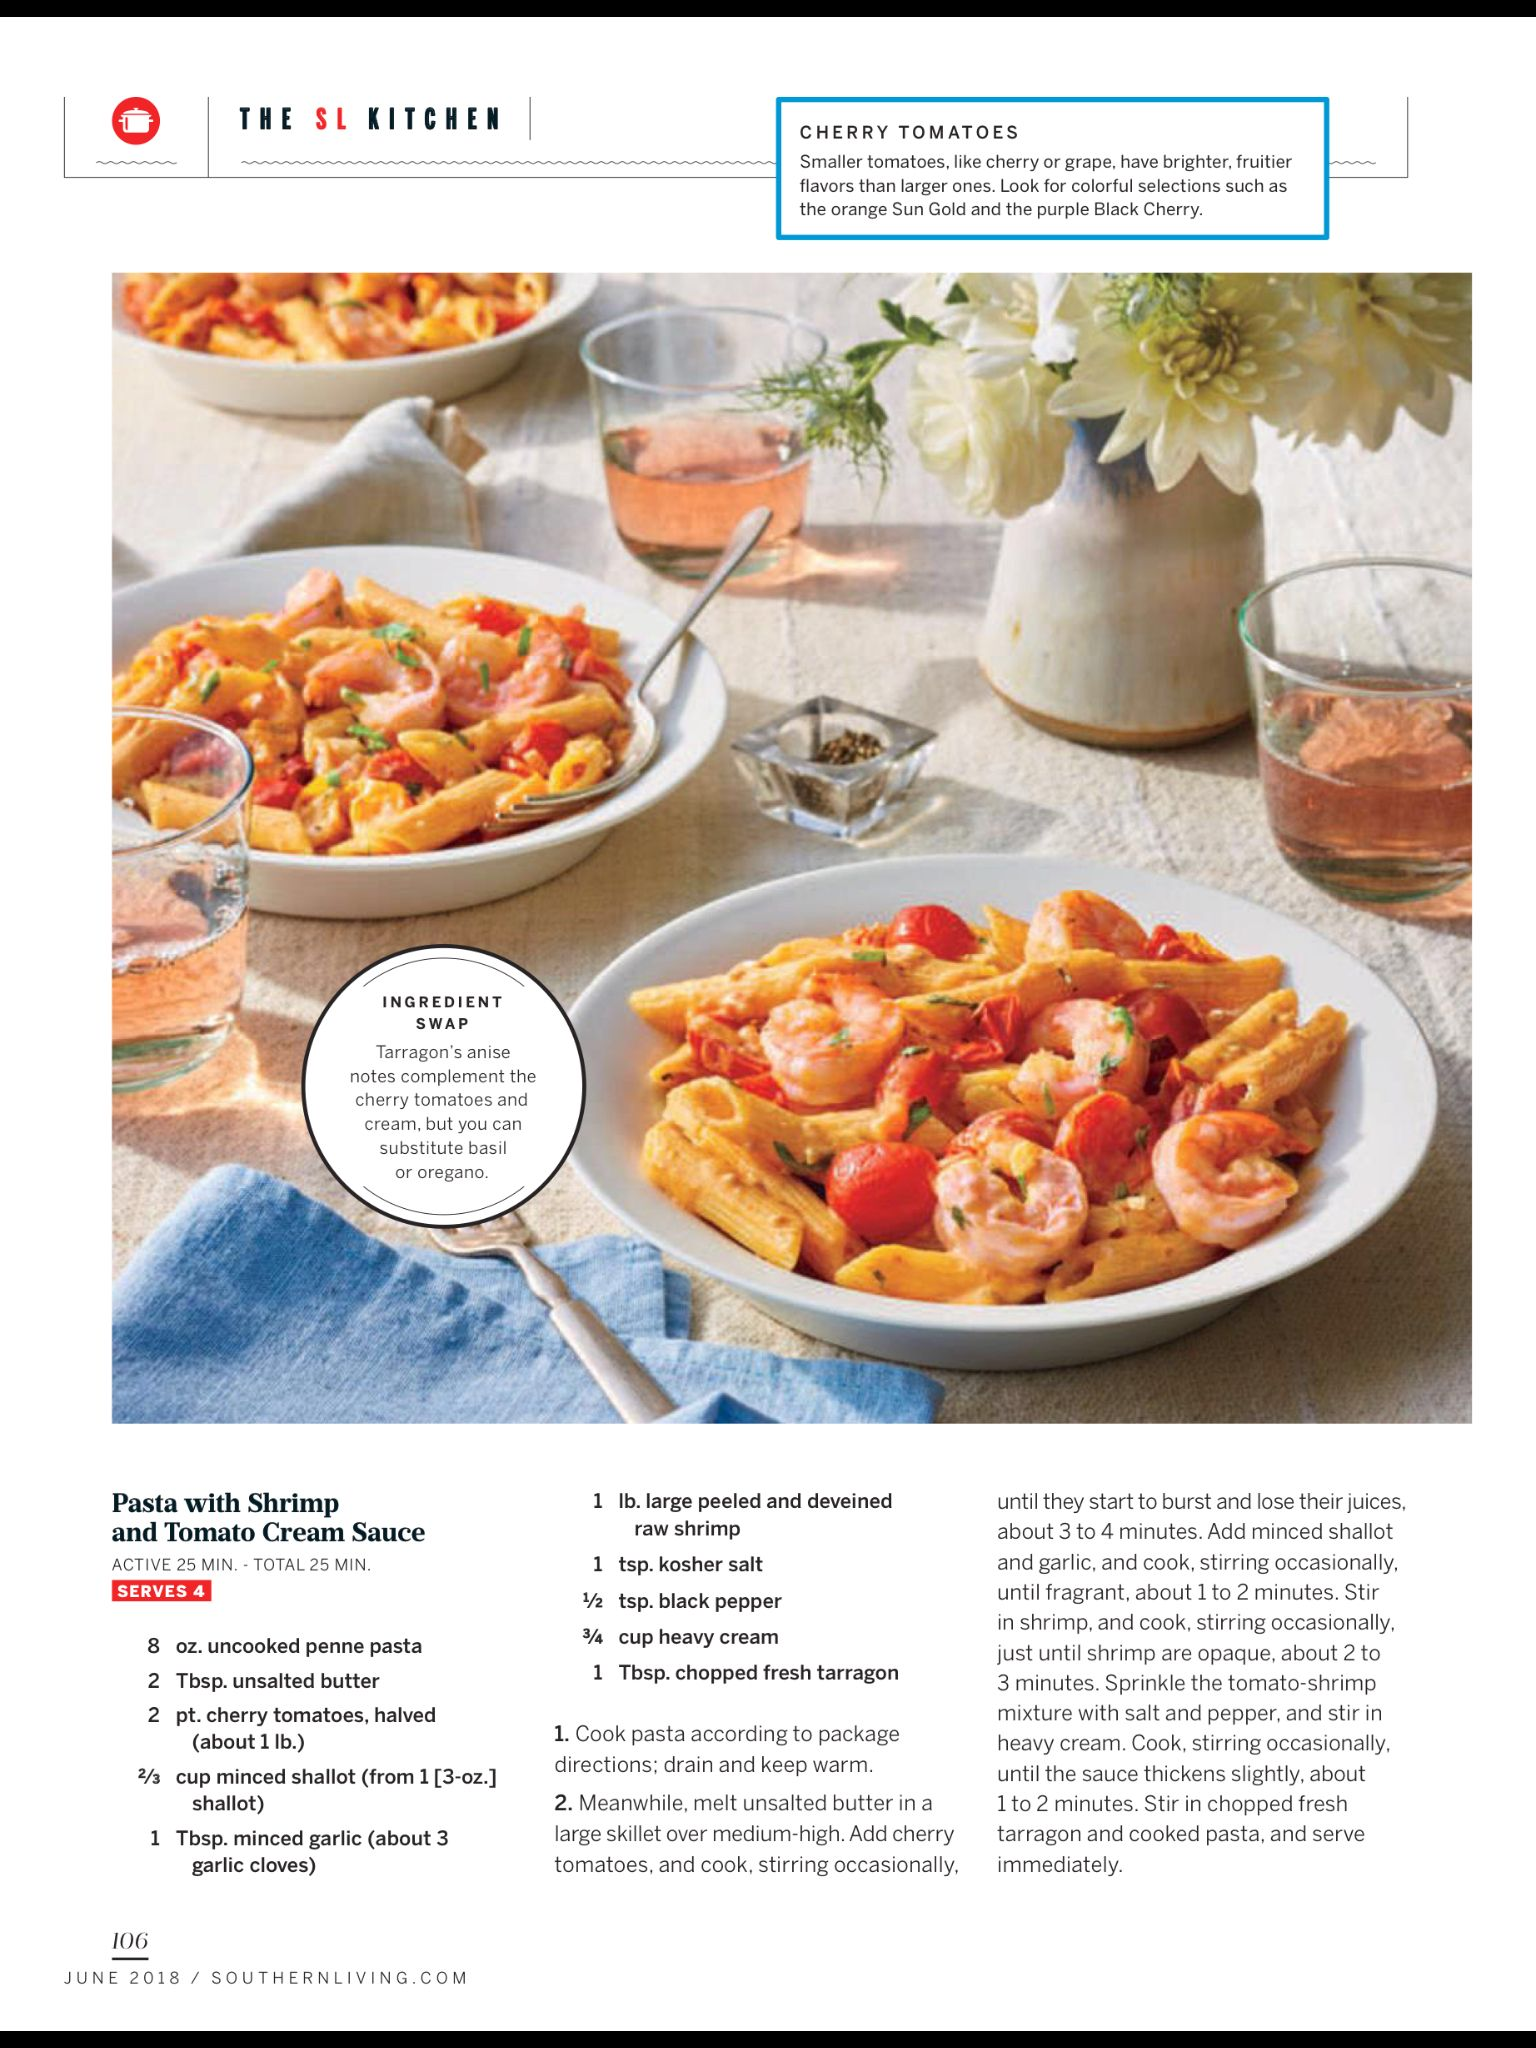 You Say Tomato From Southern Living June 2018 Read It On The